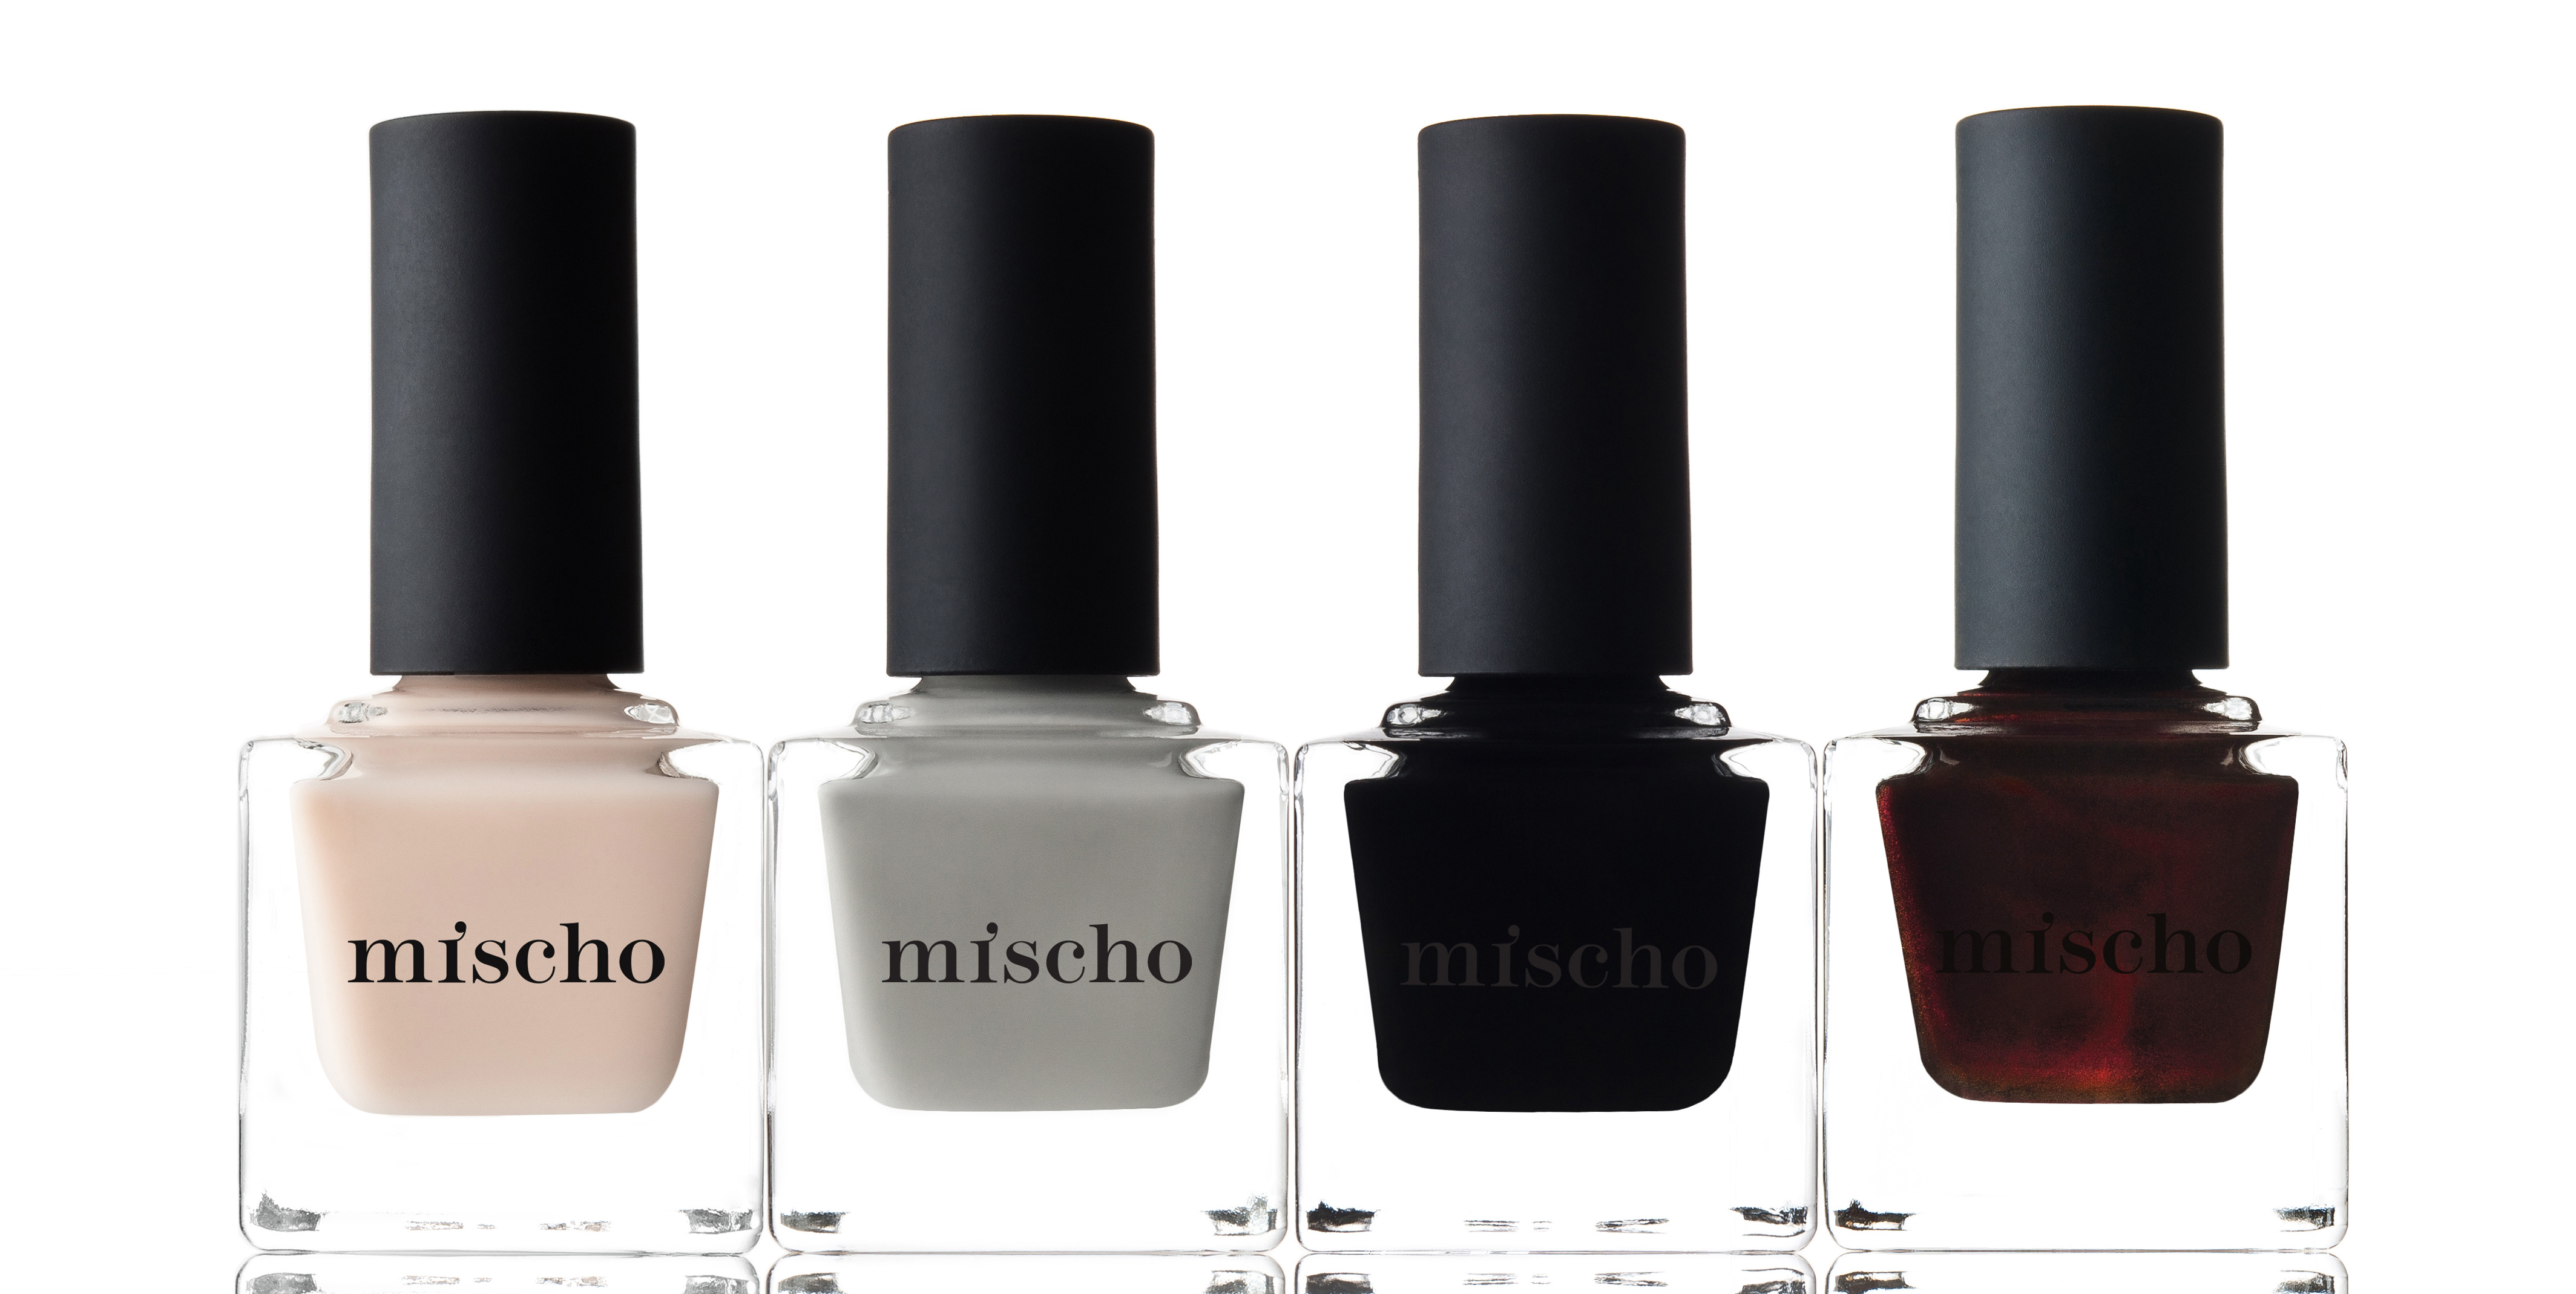 Mischo Beauty Luxury Nail Lacquer Fall 2014 Collection (Photo: Mischo Beauty)